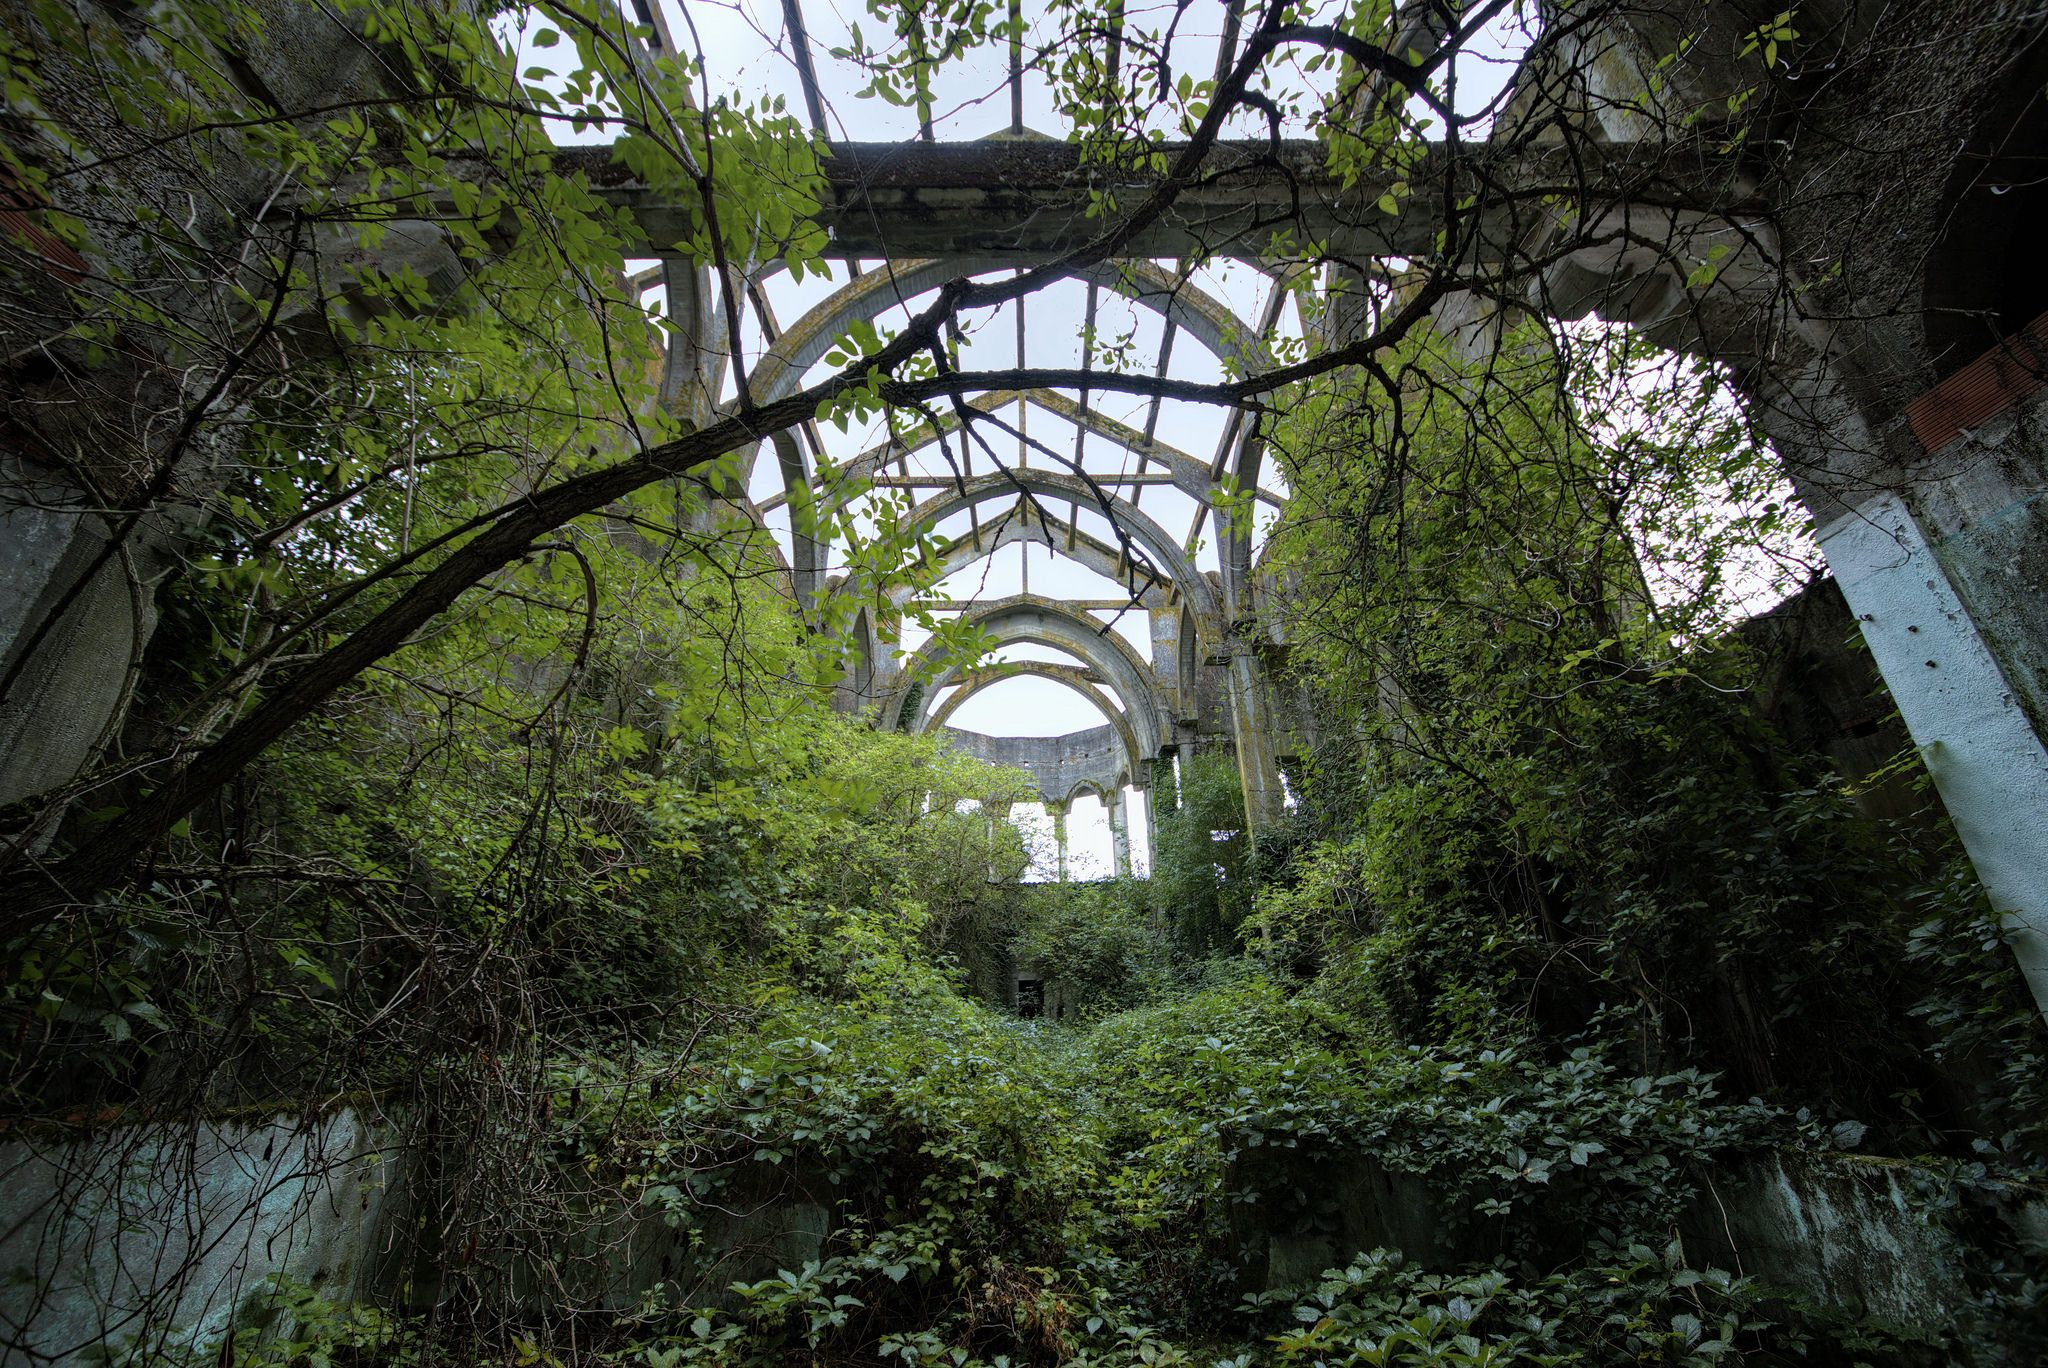 The Overgrown Ruins Of A Church [20481368] By Lauric Gourbal